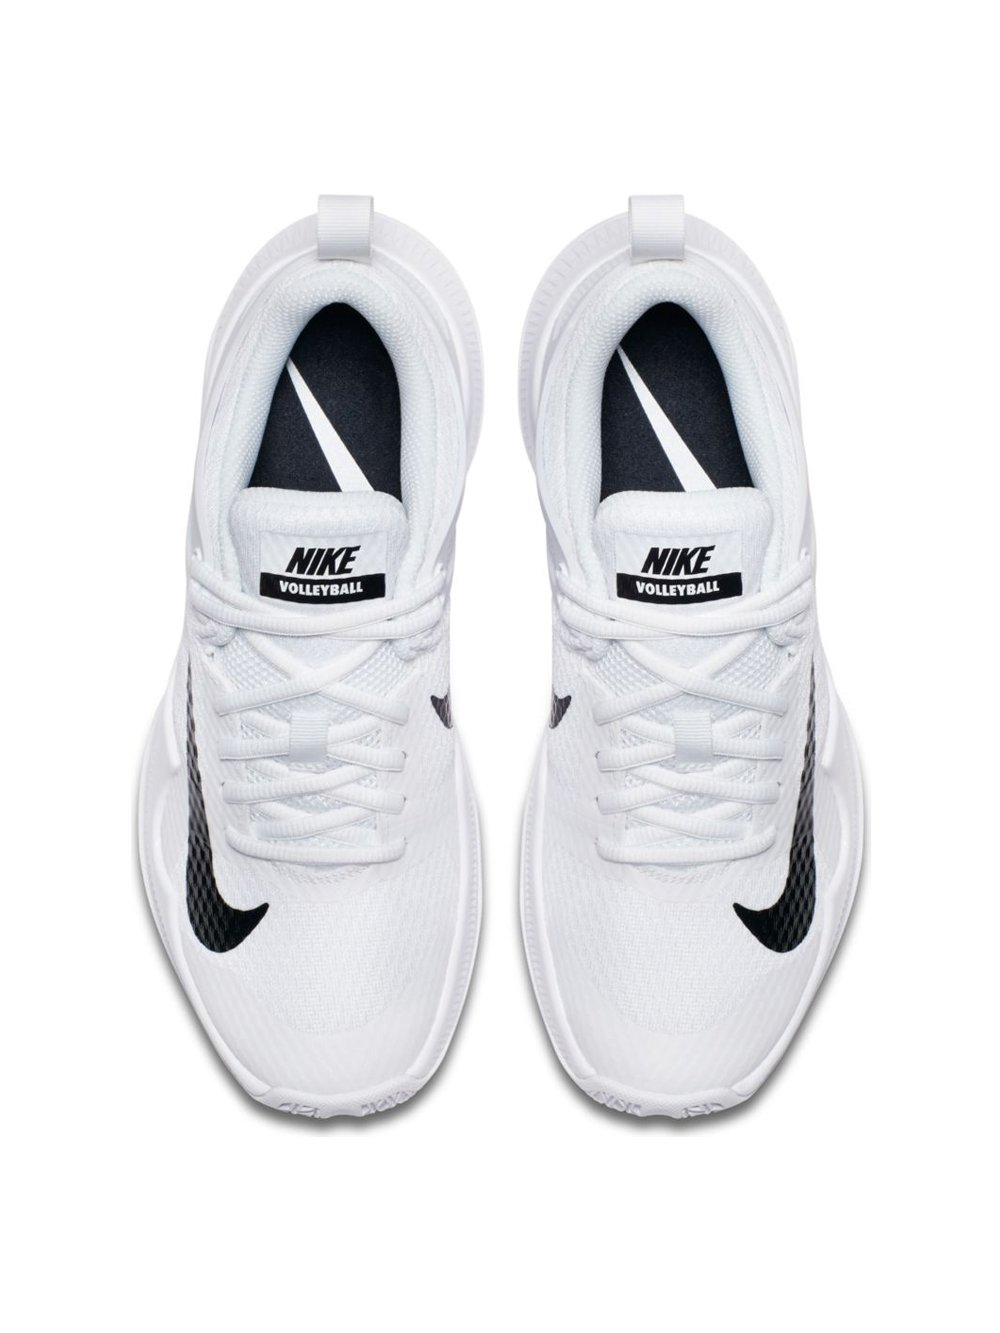 Nike Womens Wmns Air Zoom Hyperace, White / Black, 10.5 M US by NIKE (Image #4)